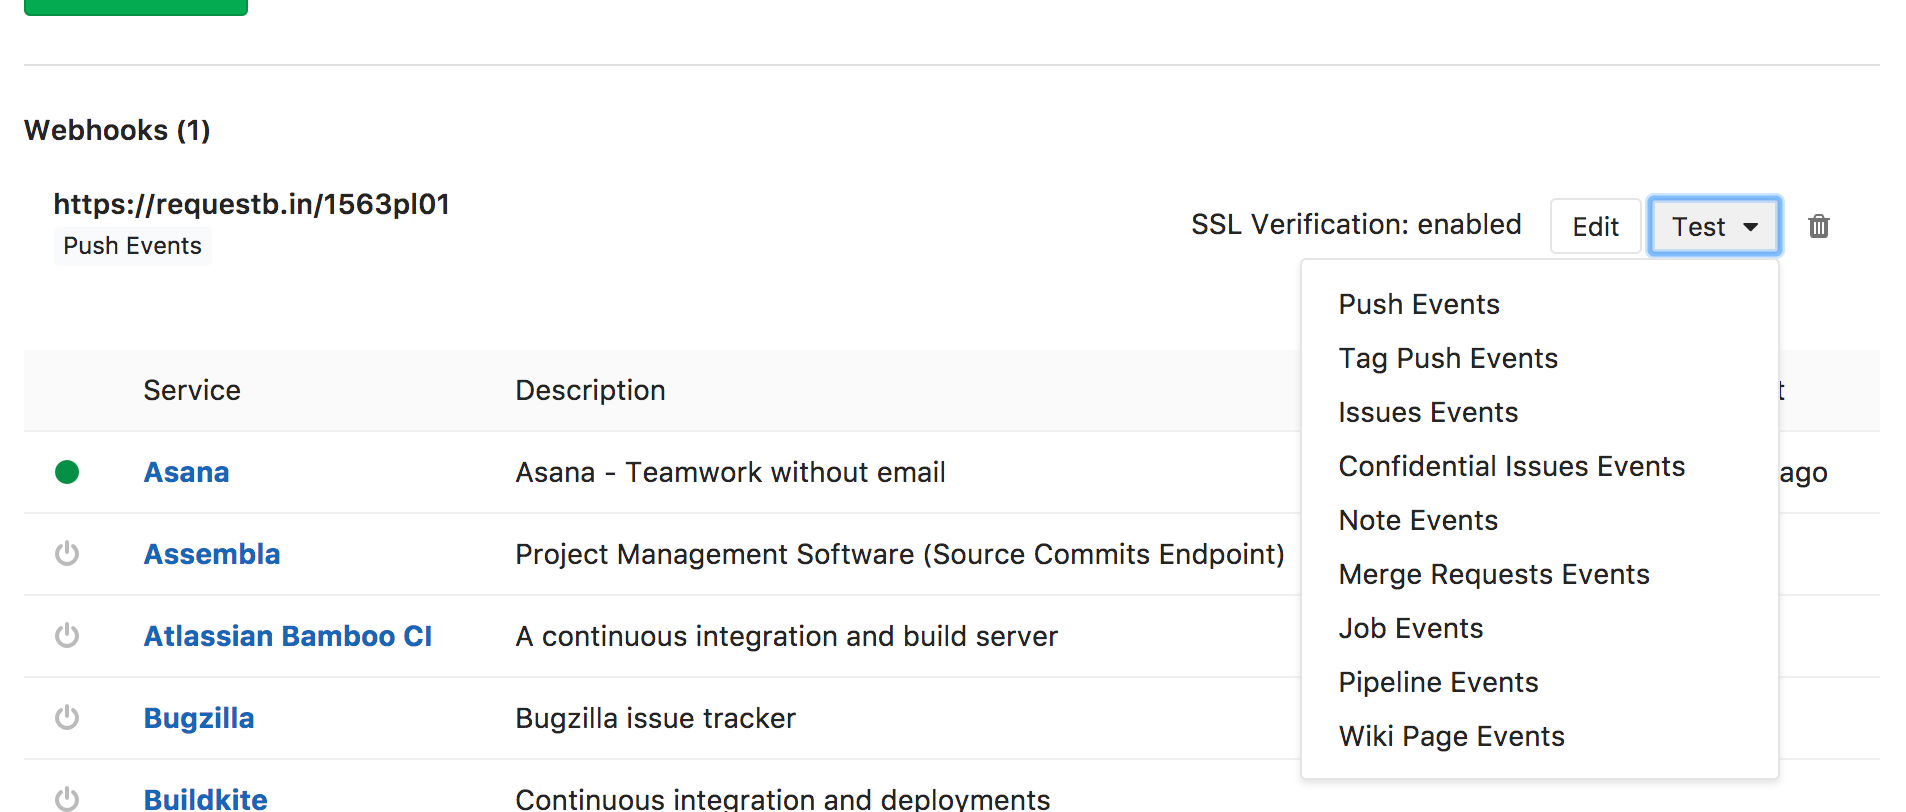 doc/user/project/integrations/img/webhook_testing.png